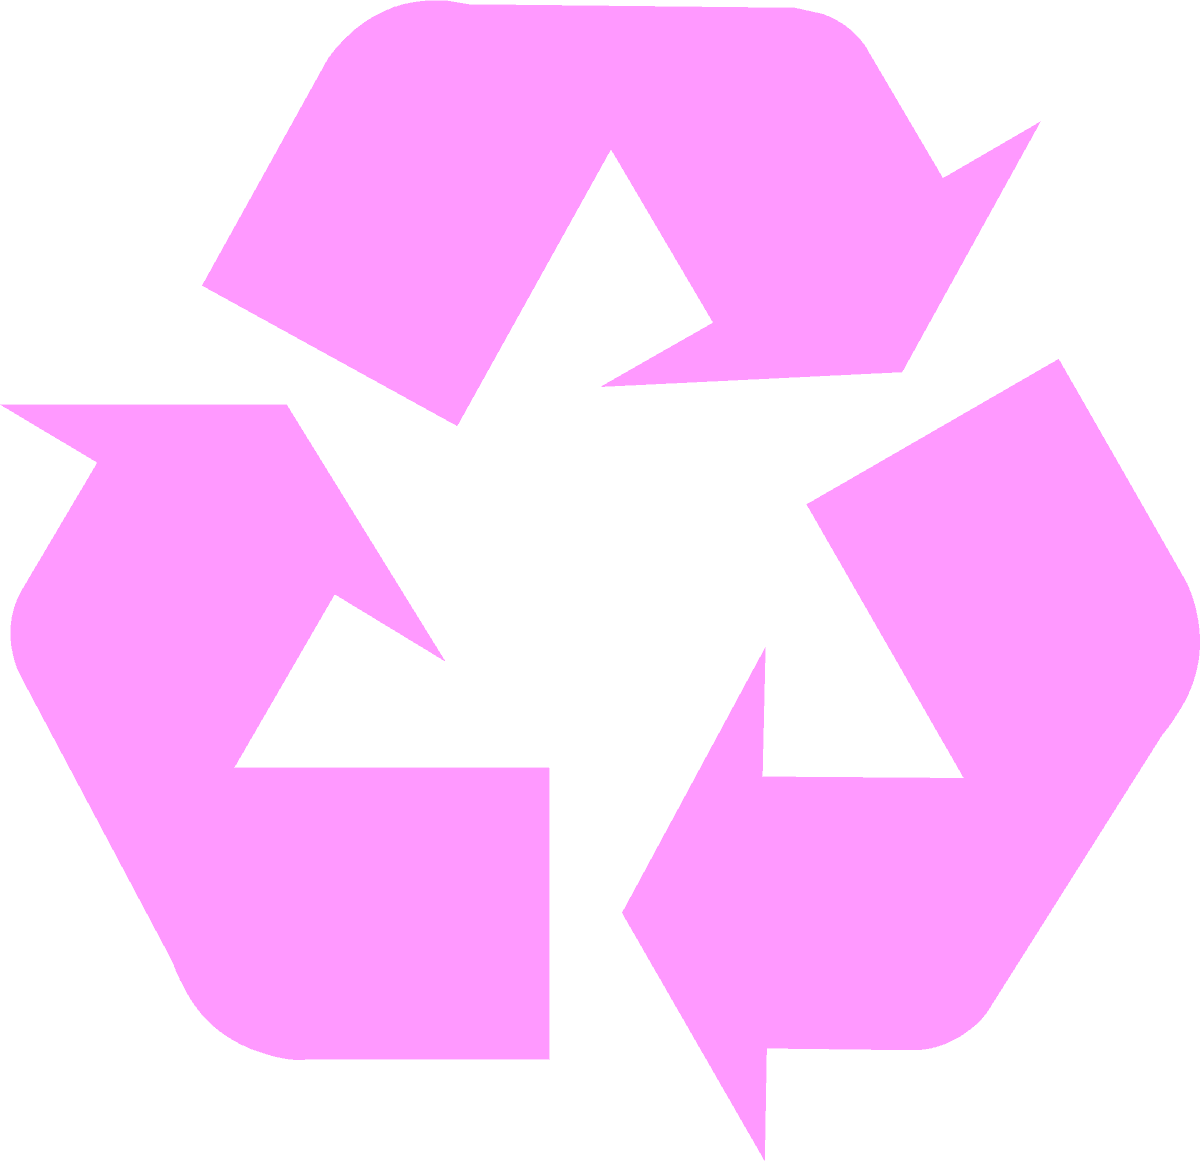 recycling-symbol-icon-solid-pink